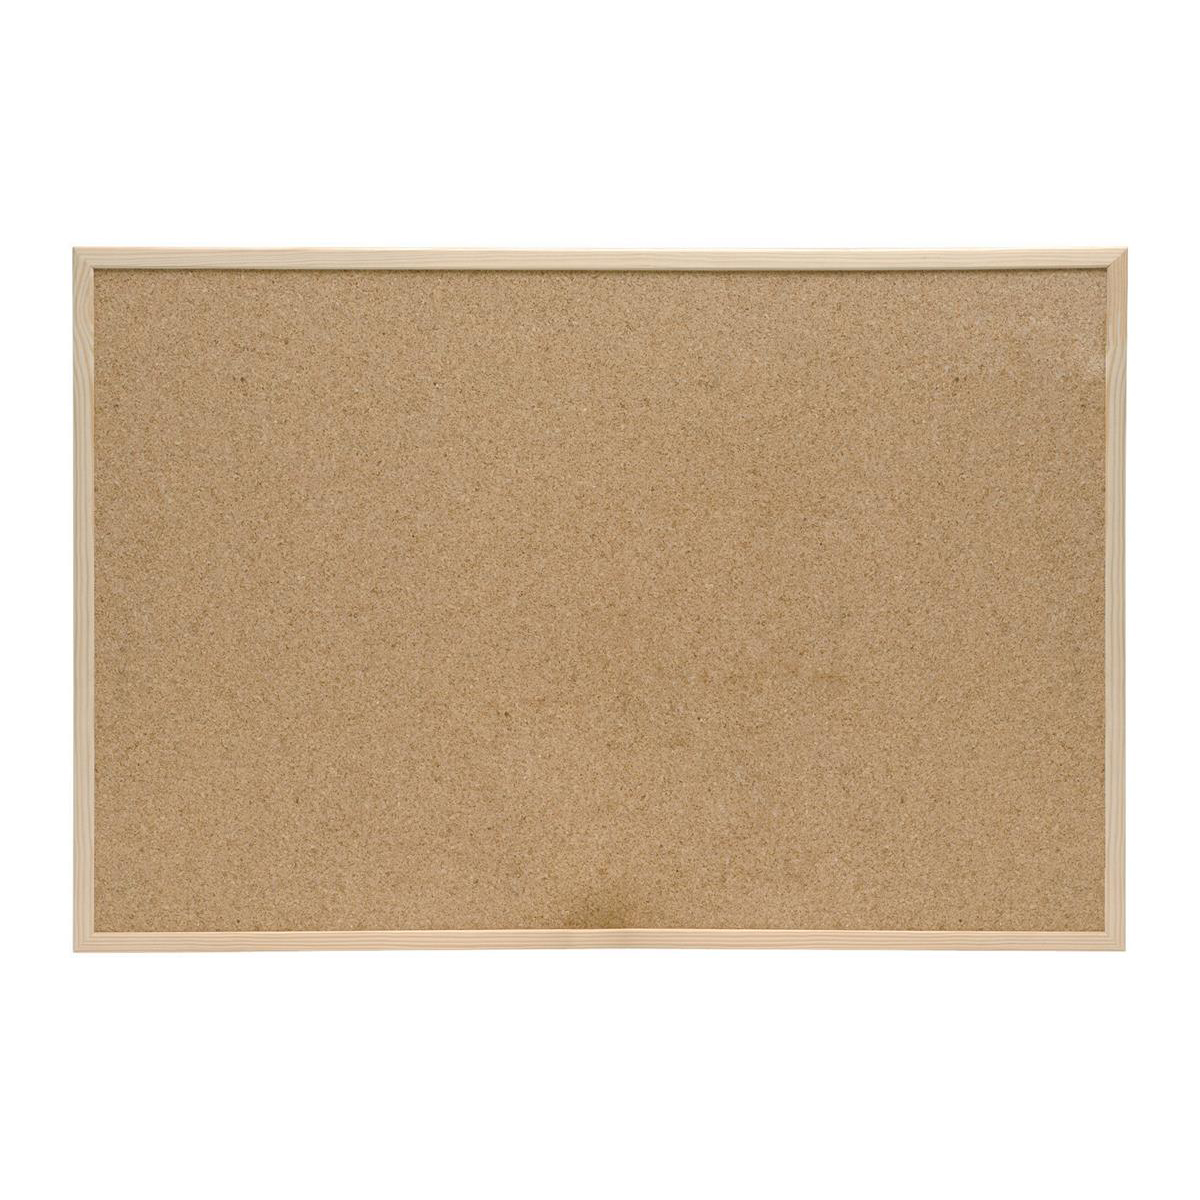 Image for 5 Star Eco Noticeboard Cork with Pine Frame W1200xH900mm